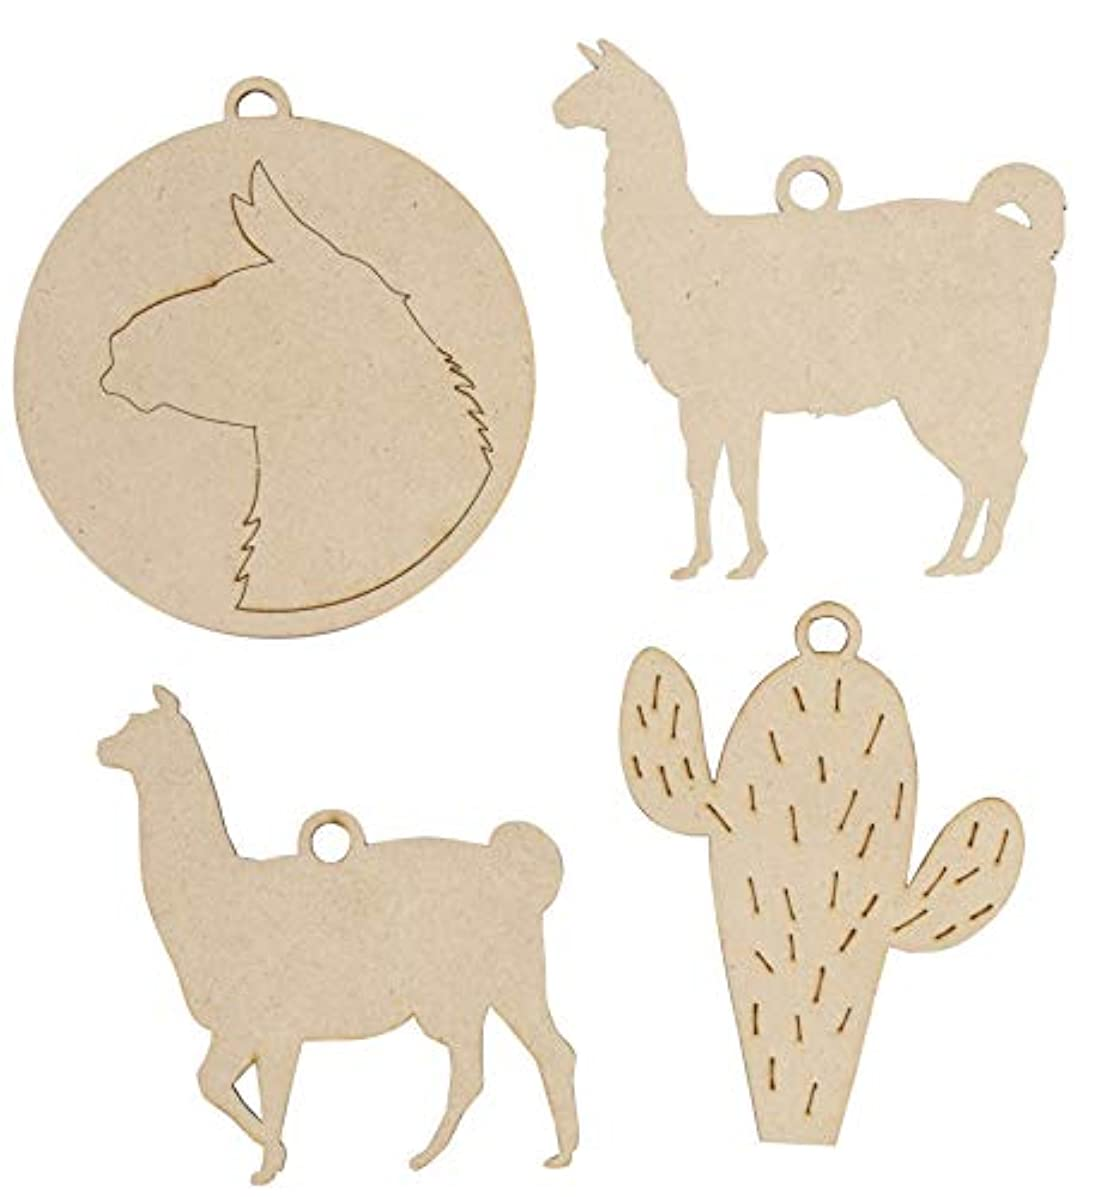 Unfinished Wooden Christmas Ornaments - 24-Pack Paintable Blank Xmas Tree Hanging Wood Slices for Kids DIY Art Crafts, 4 Assorted Llama and Cactus Designs, 3.7 x 4.1 to 4.2 x 4.3 Inches